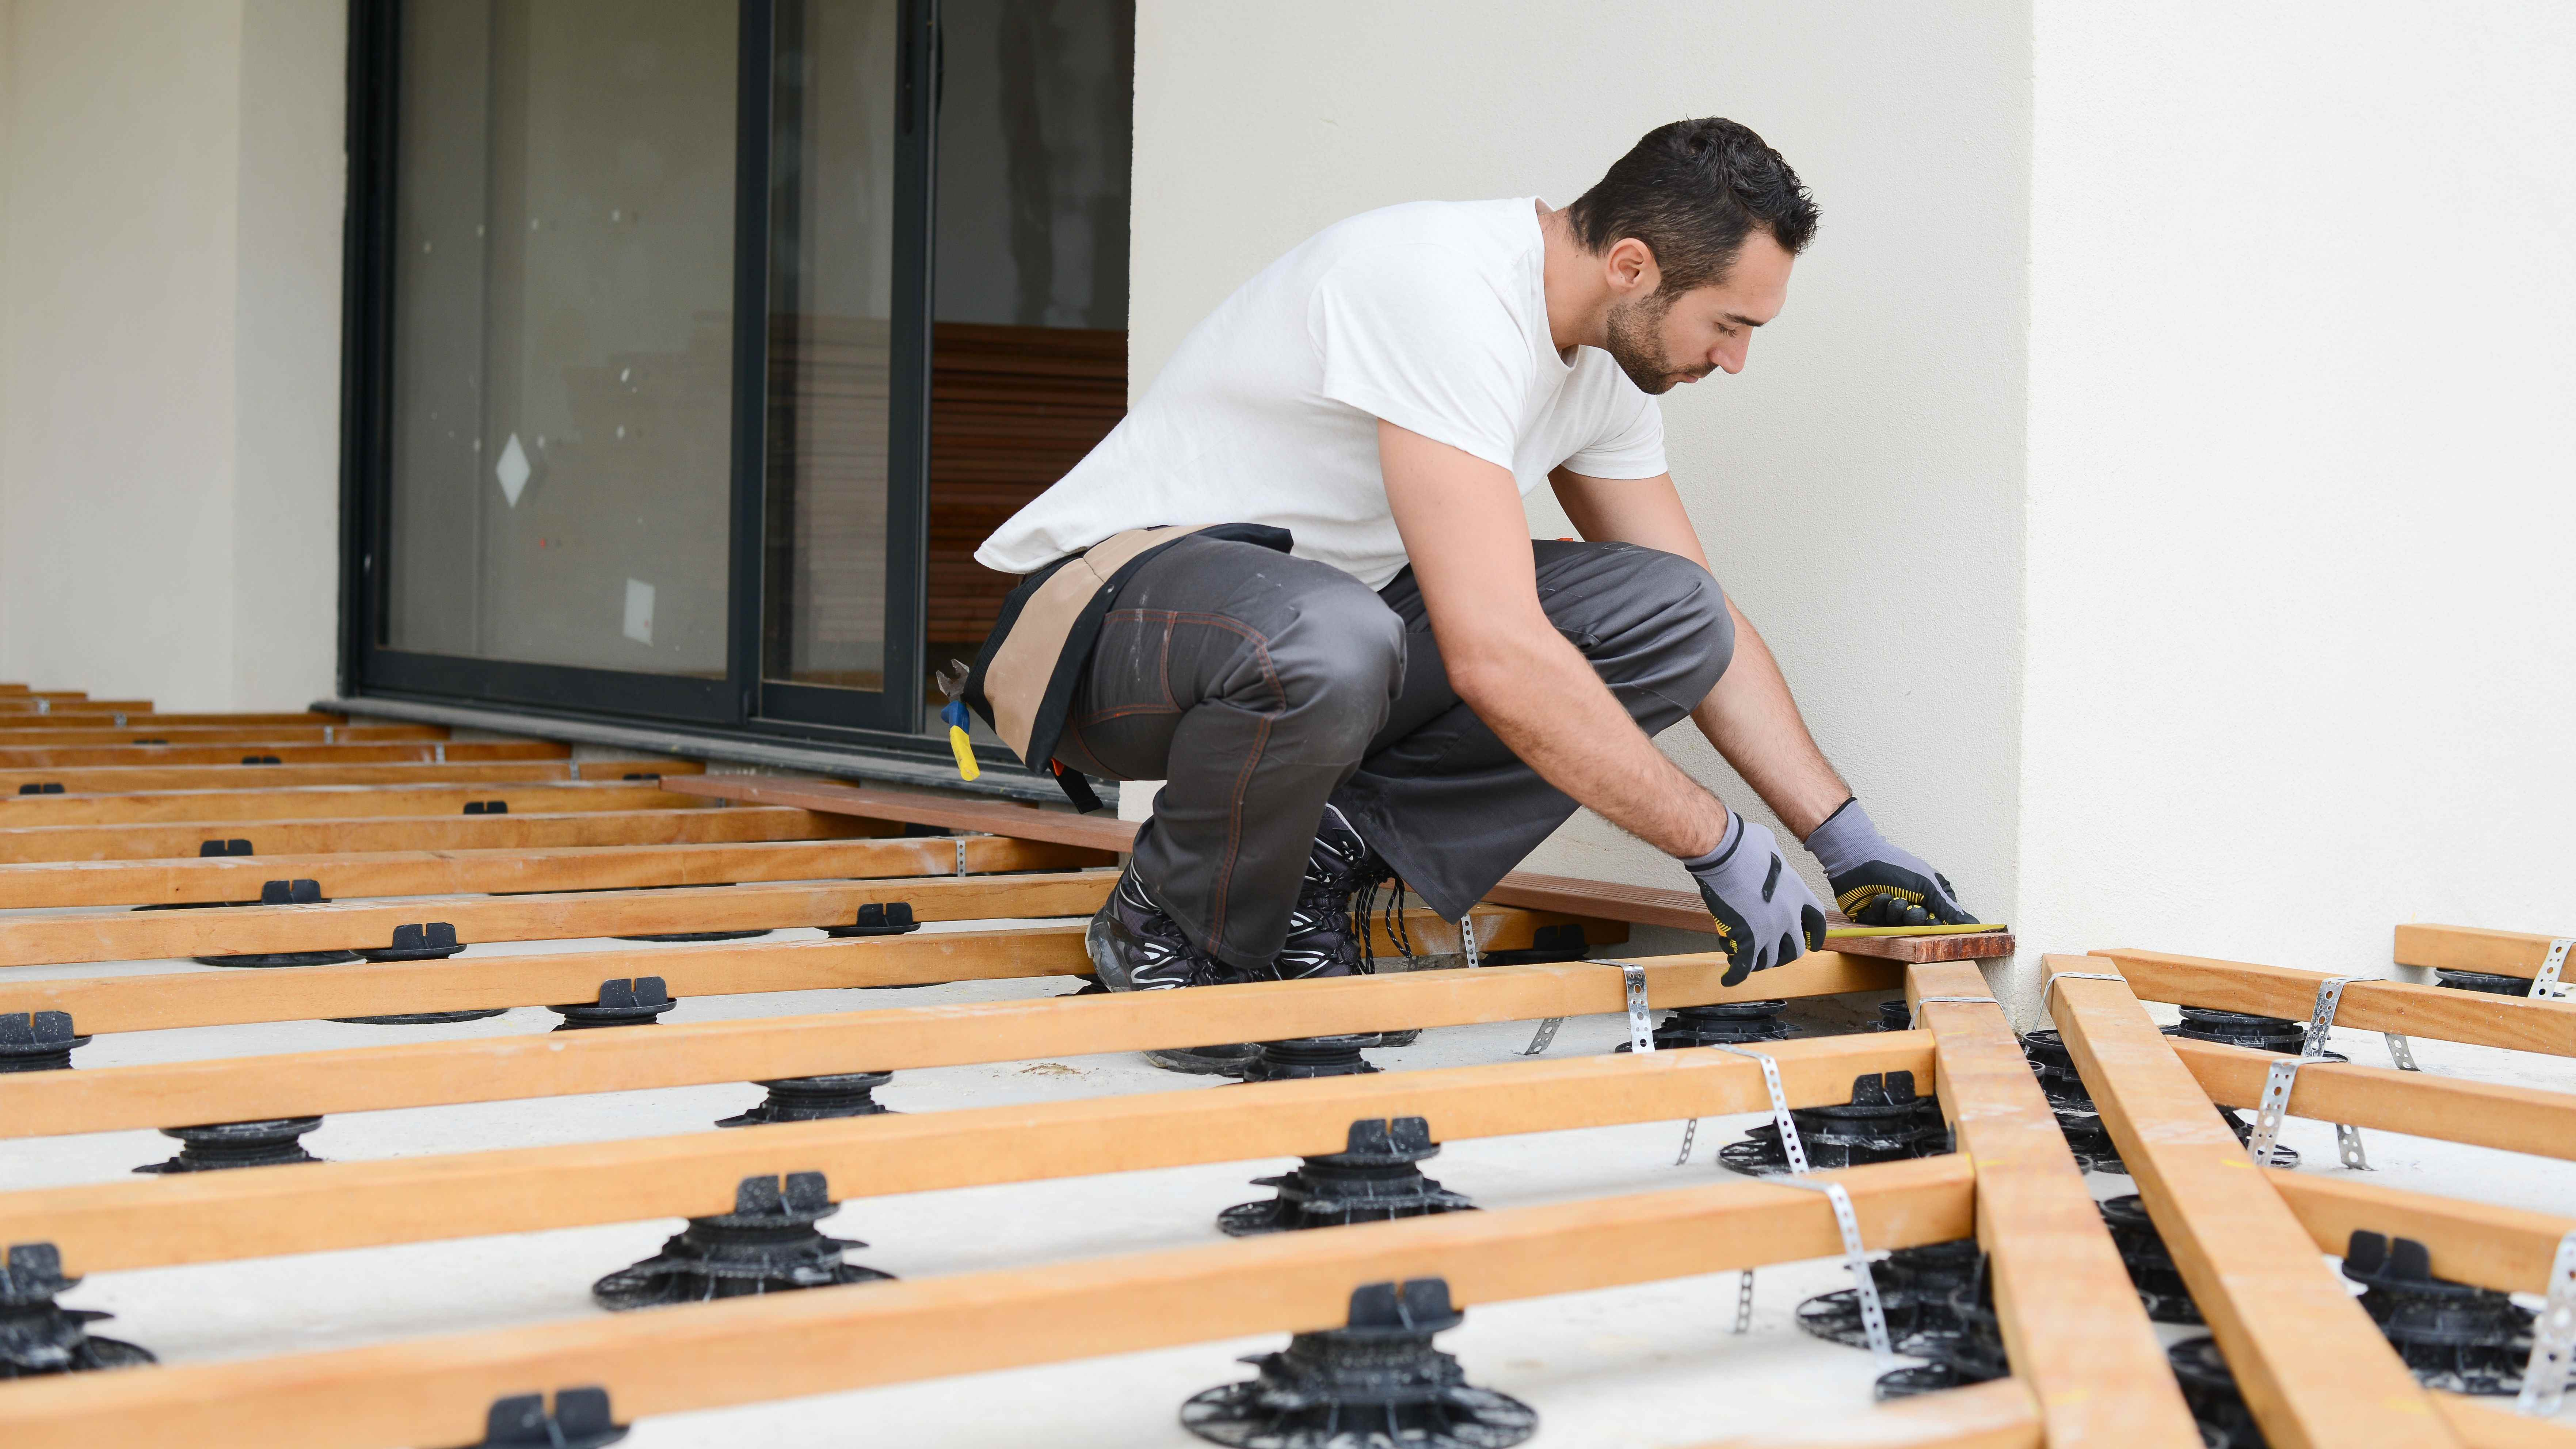 How to lay decking on riser pedestals